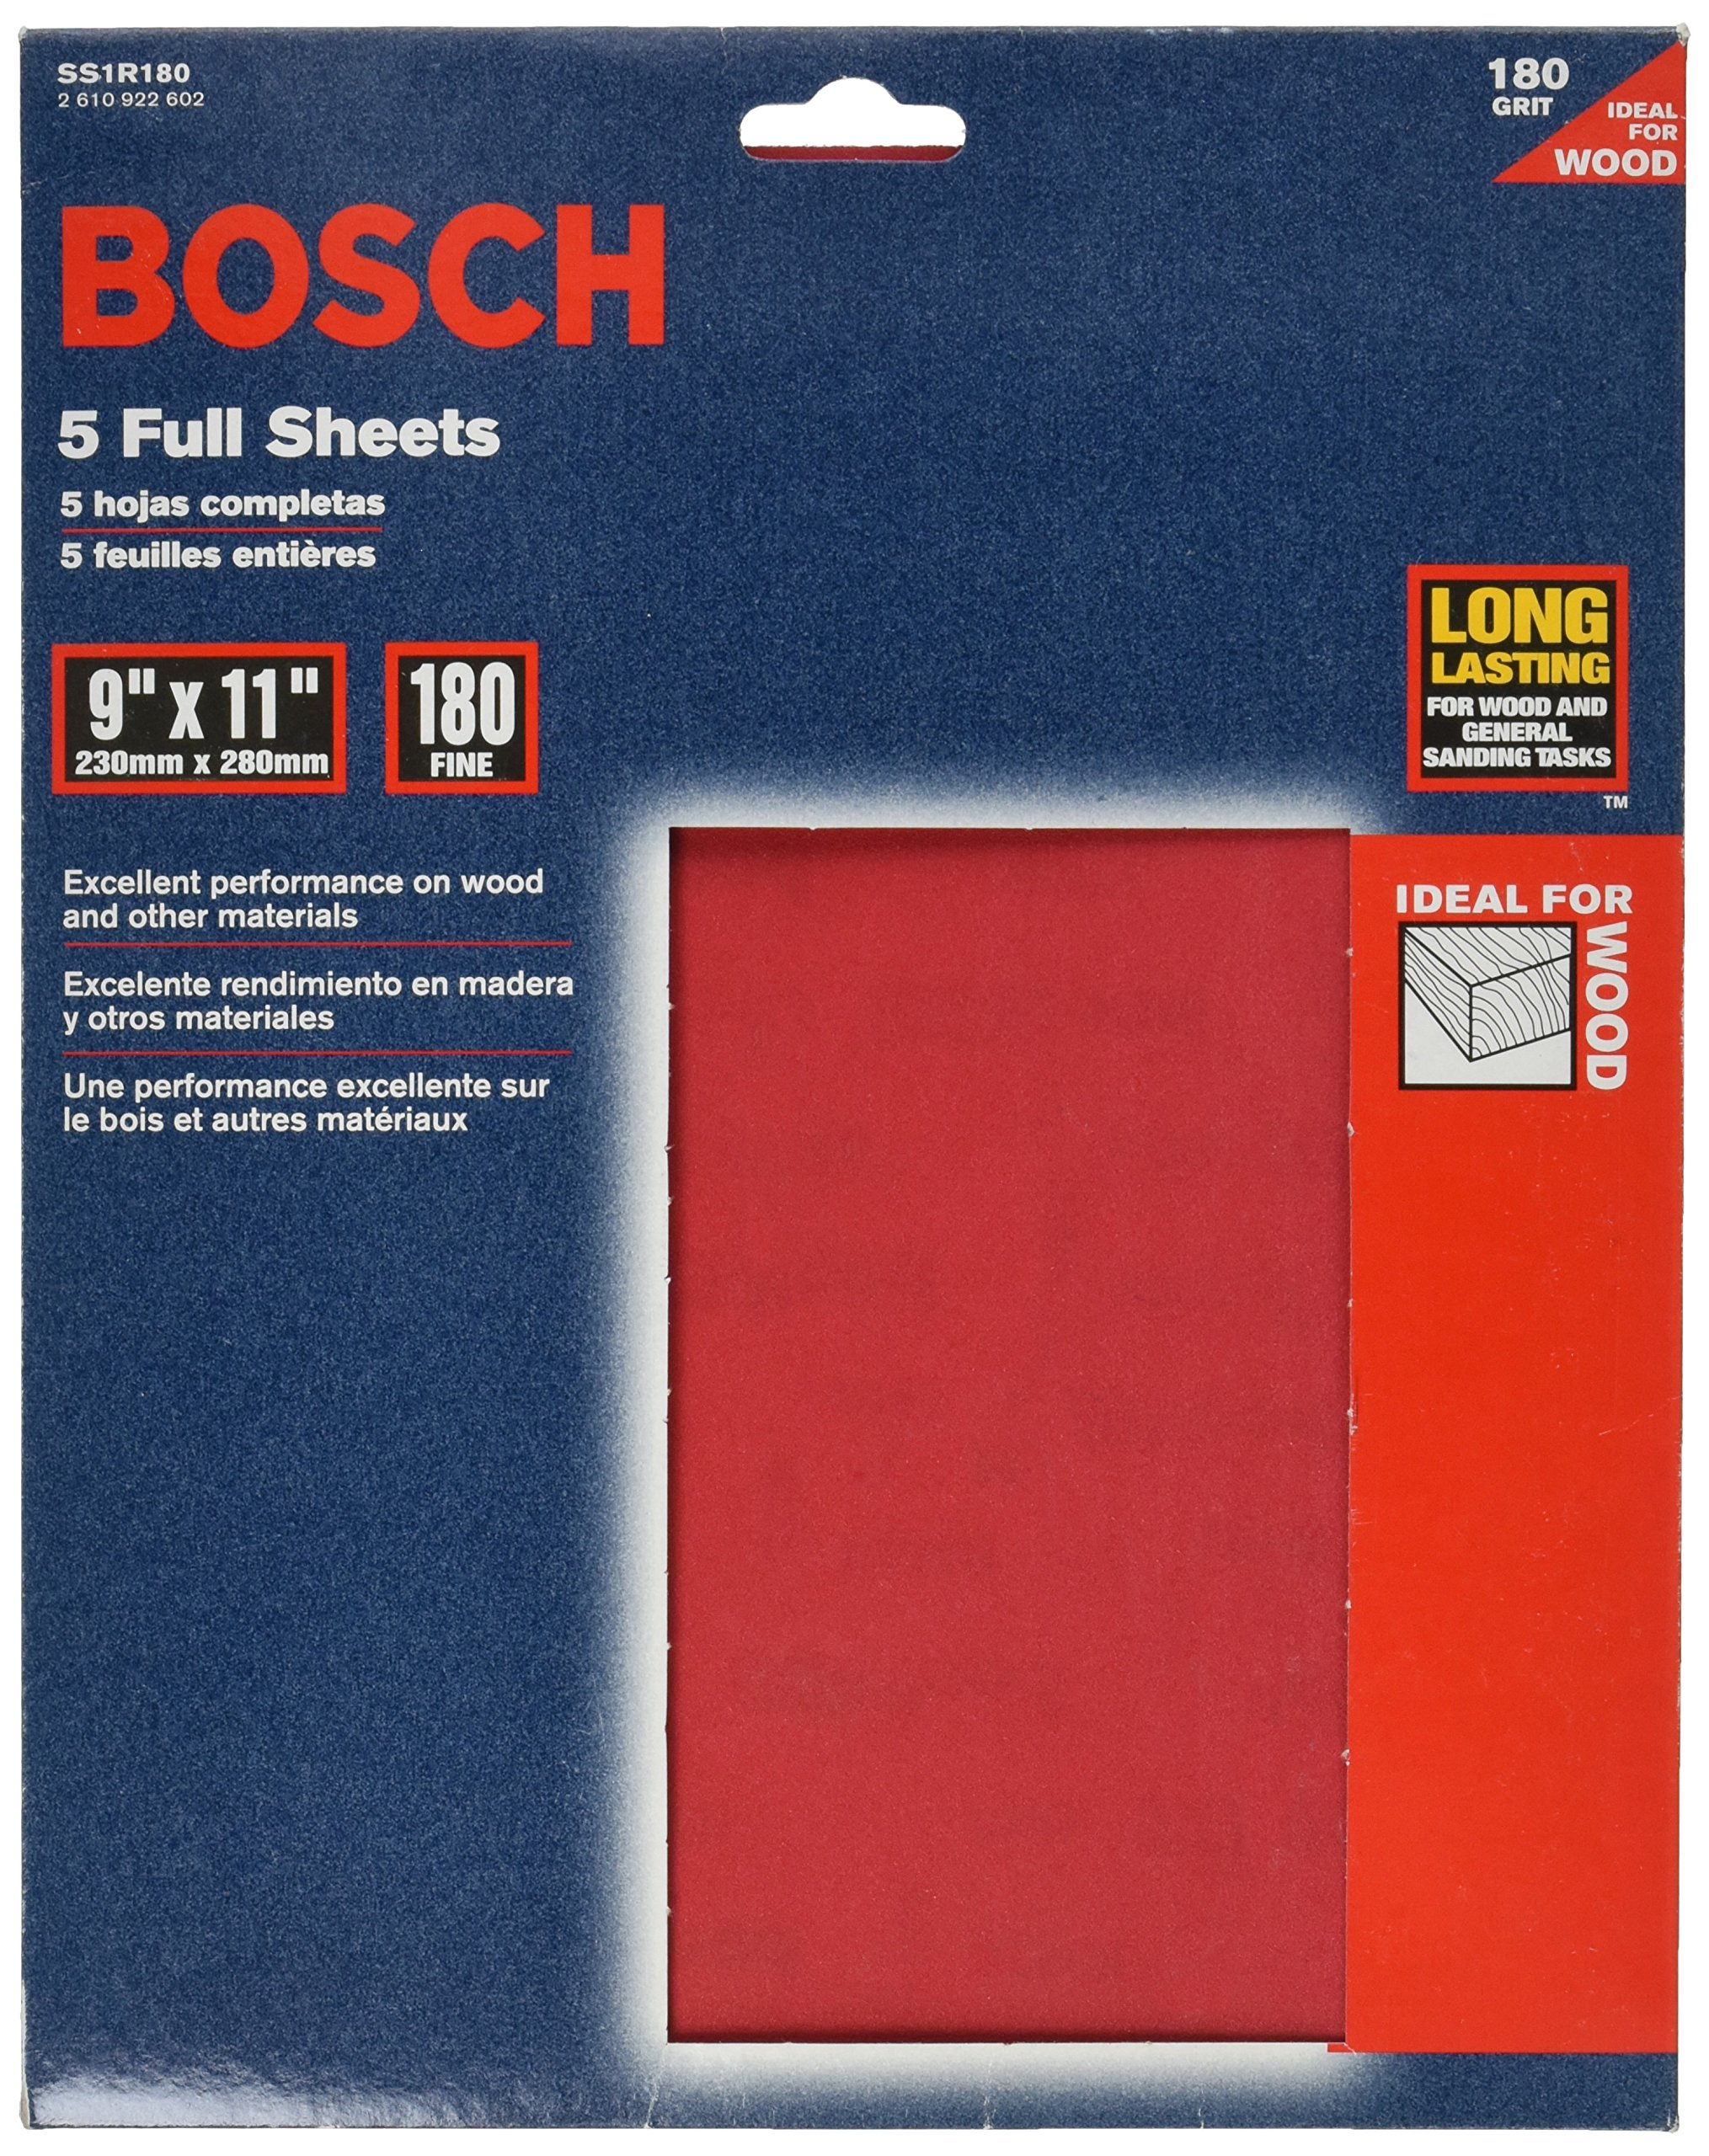 Bosch SS1R180 5-Piece 180 Grit 9 In. x 11 In. General-Purpose Sanding Sheets